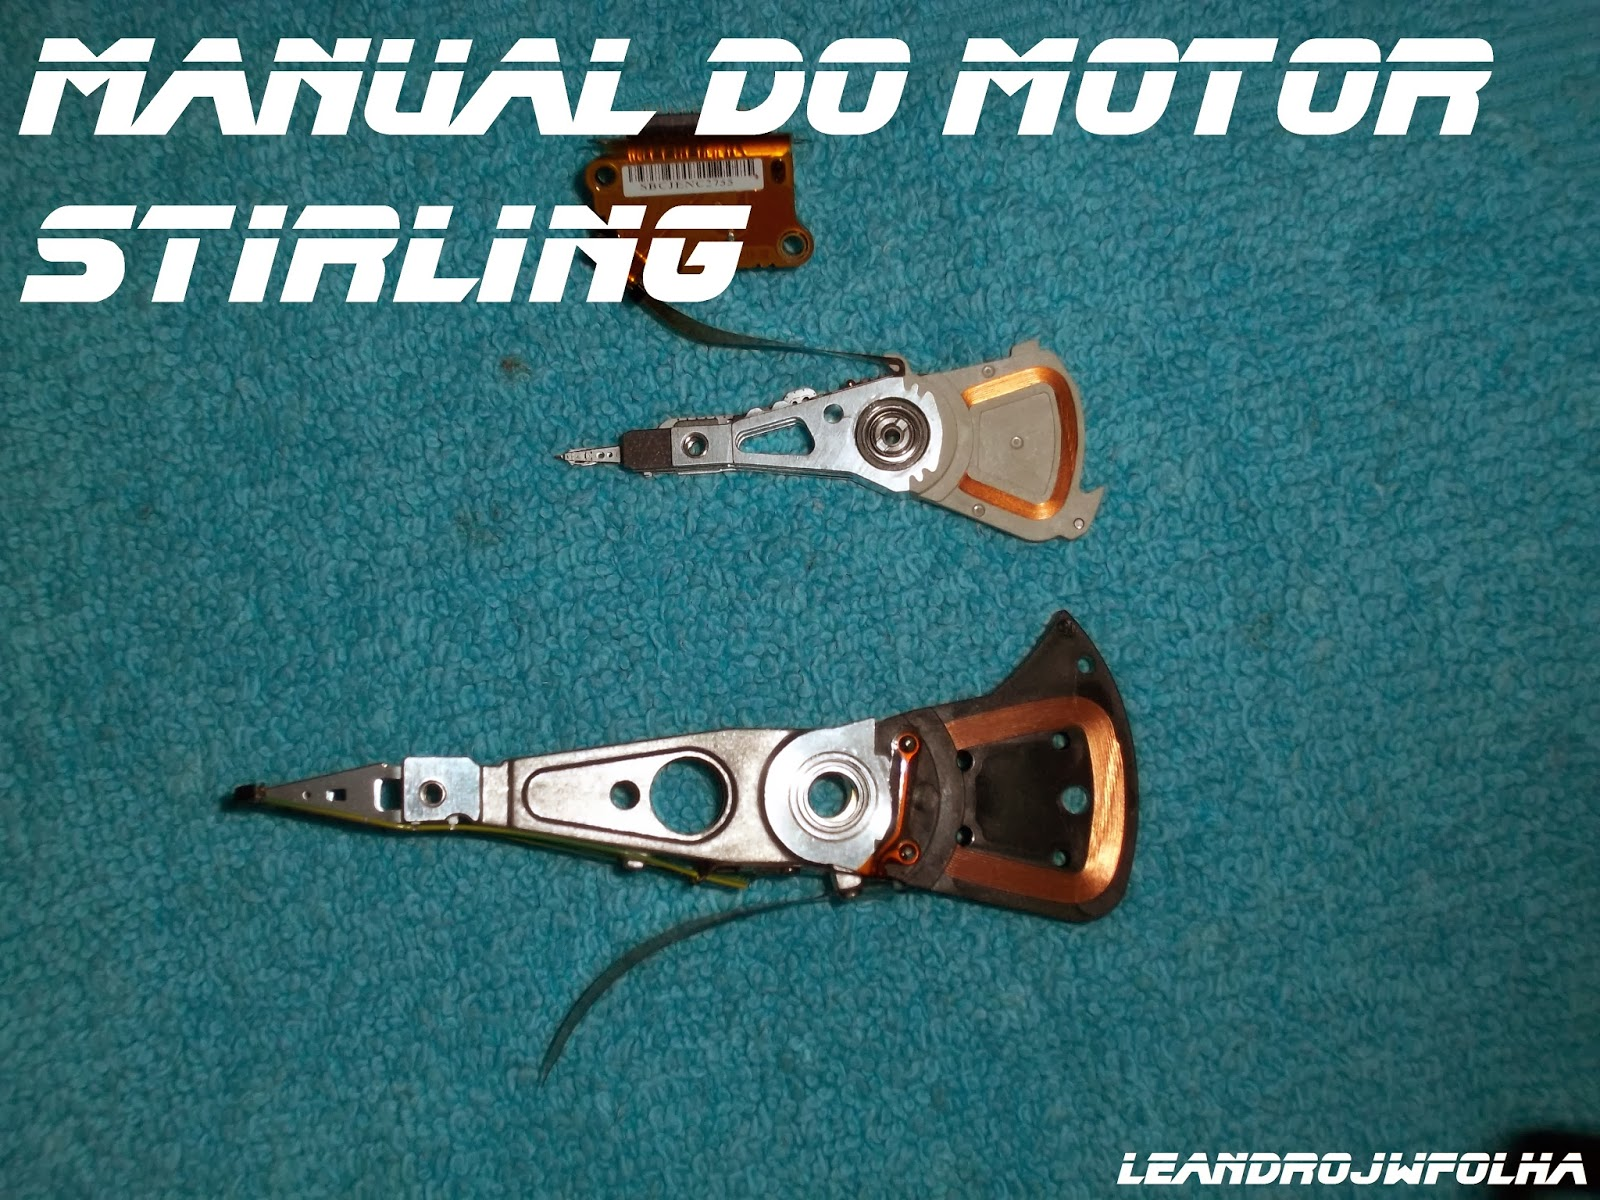 Manual do motor Stirling, leitor de HD rolametanda, para montagem biela do motor